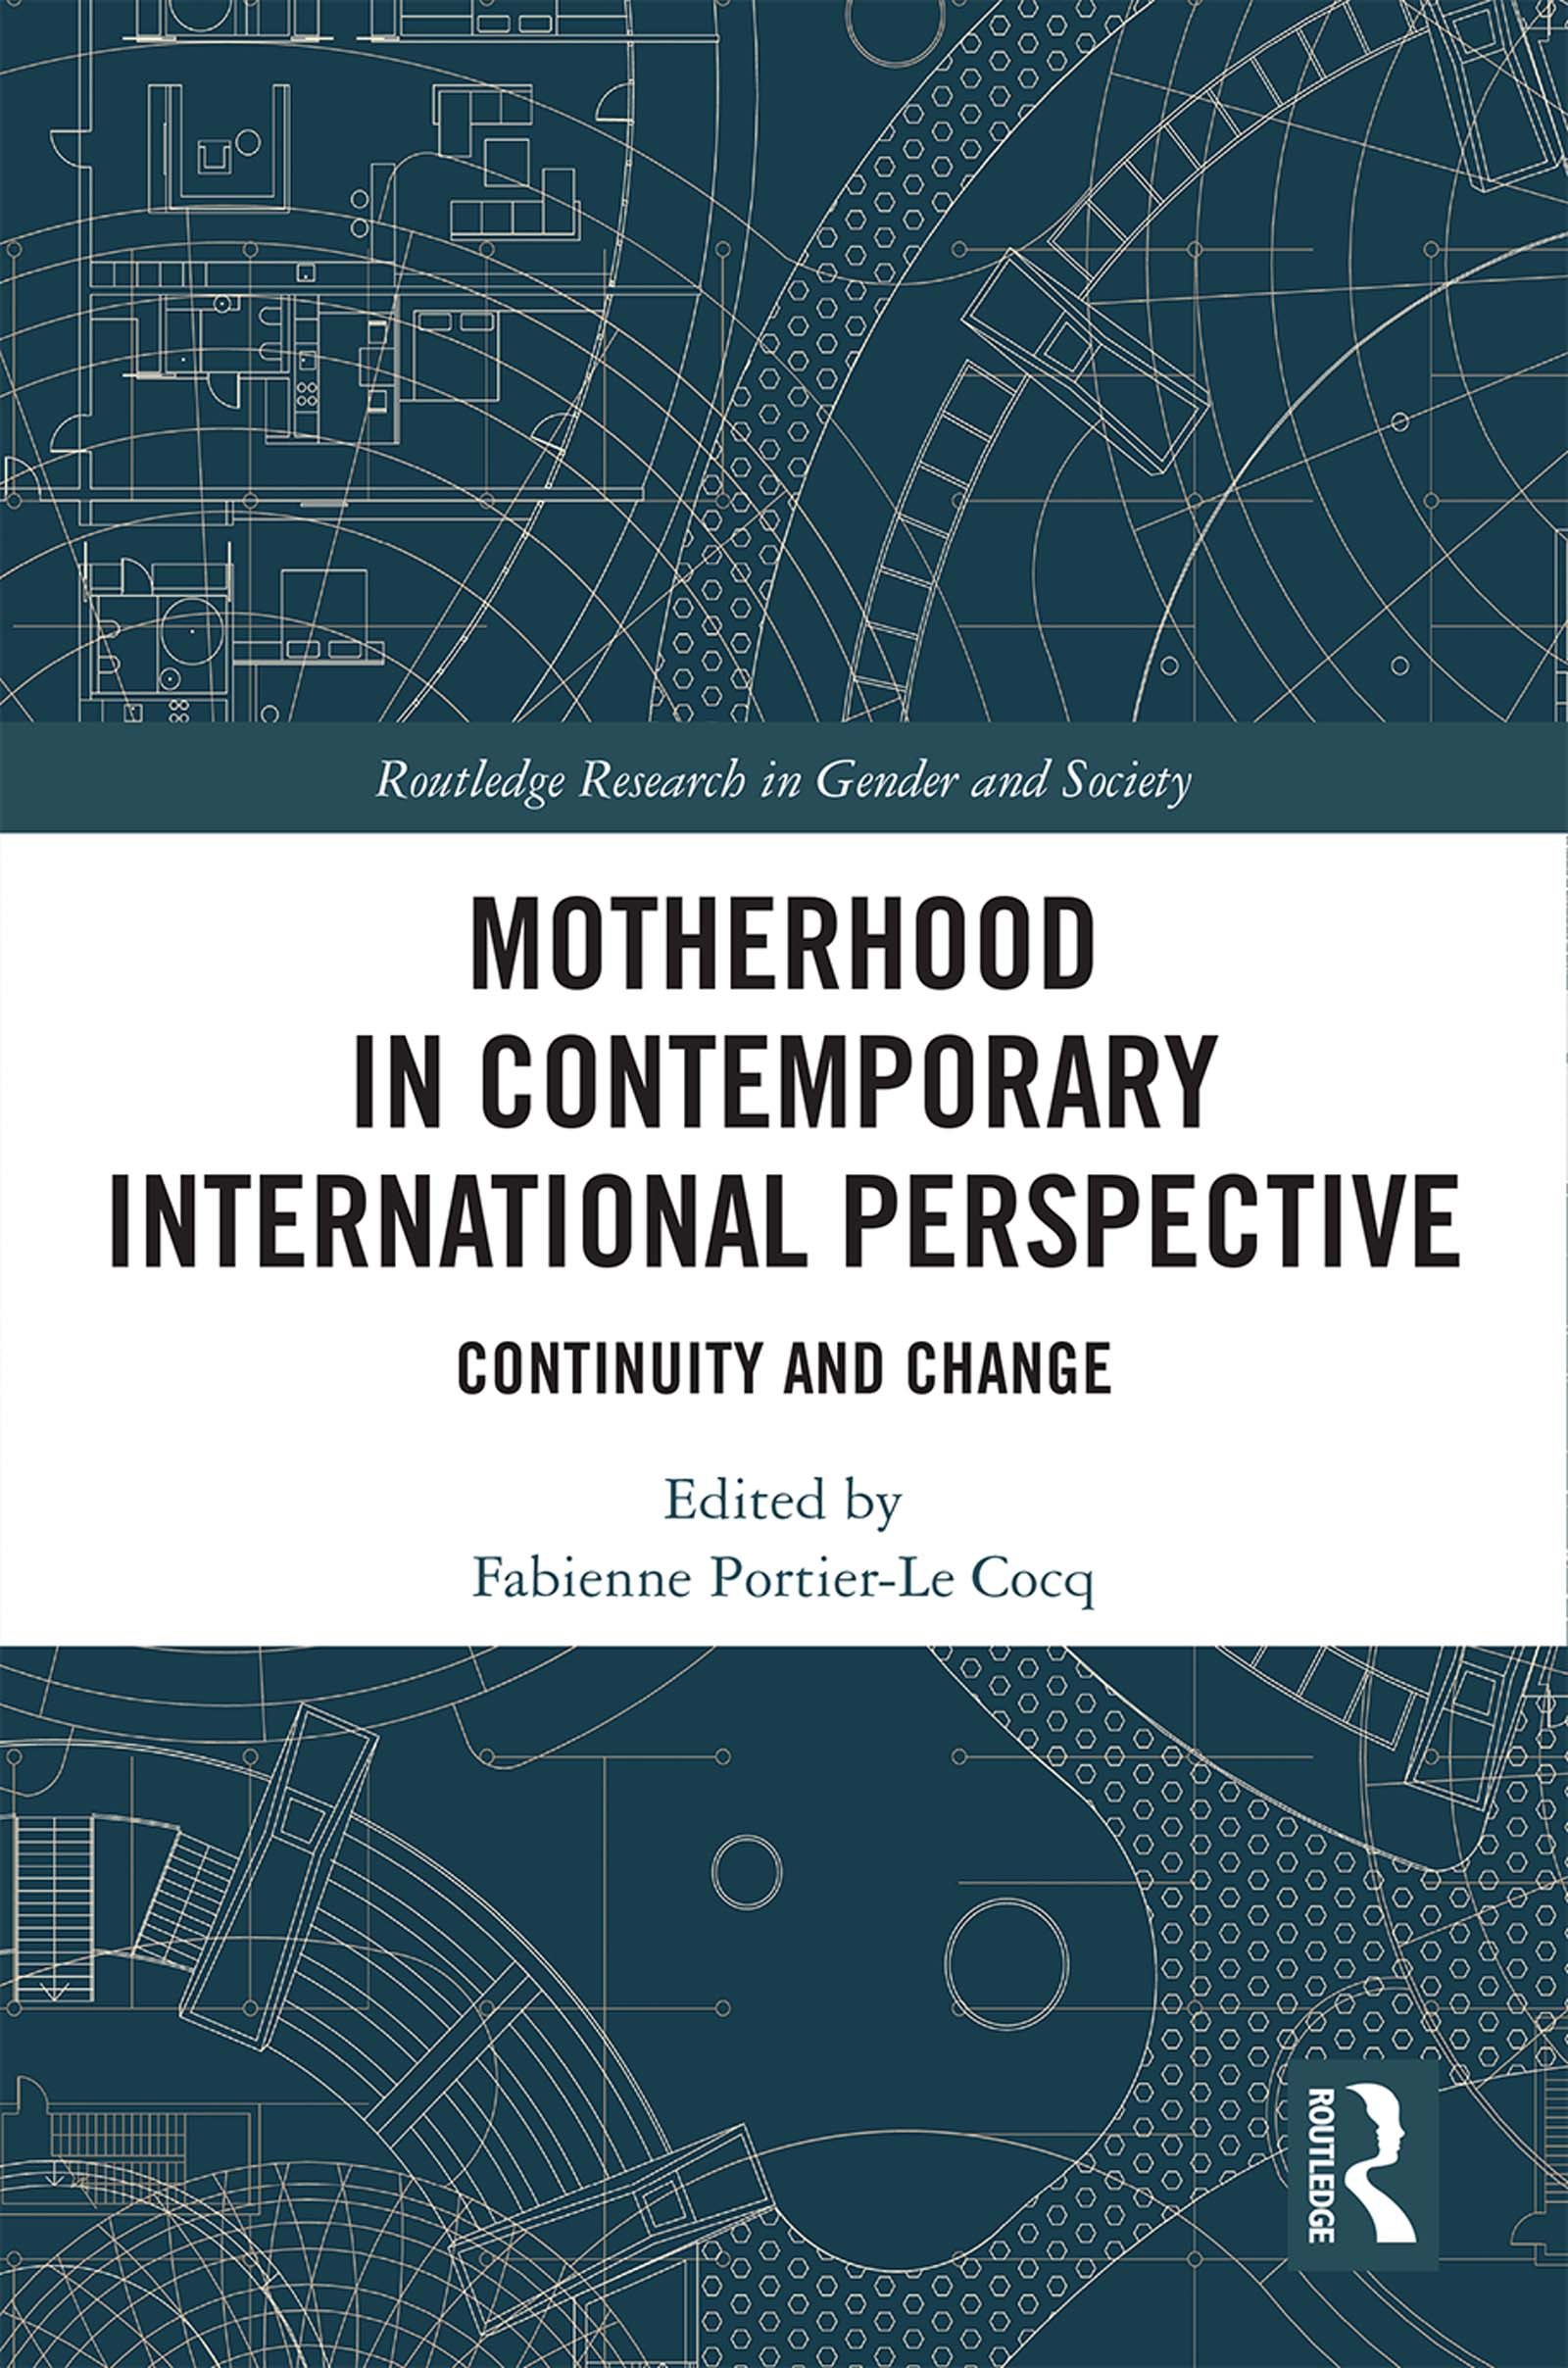 Motherhood in Contemporary International Perspective: Continuity and Change book cover